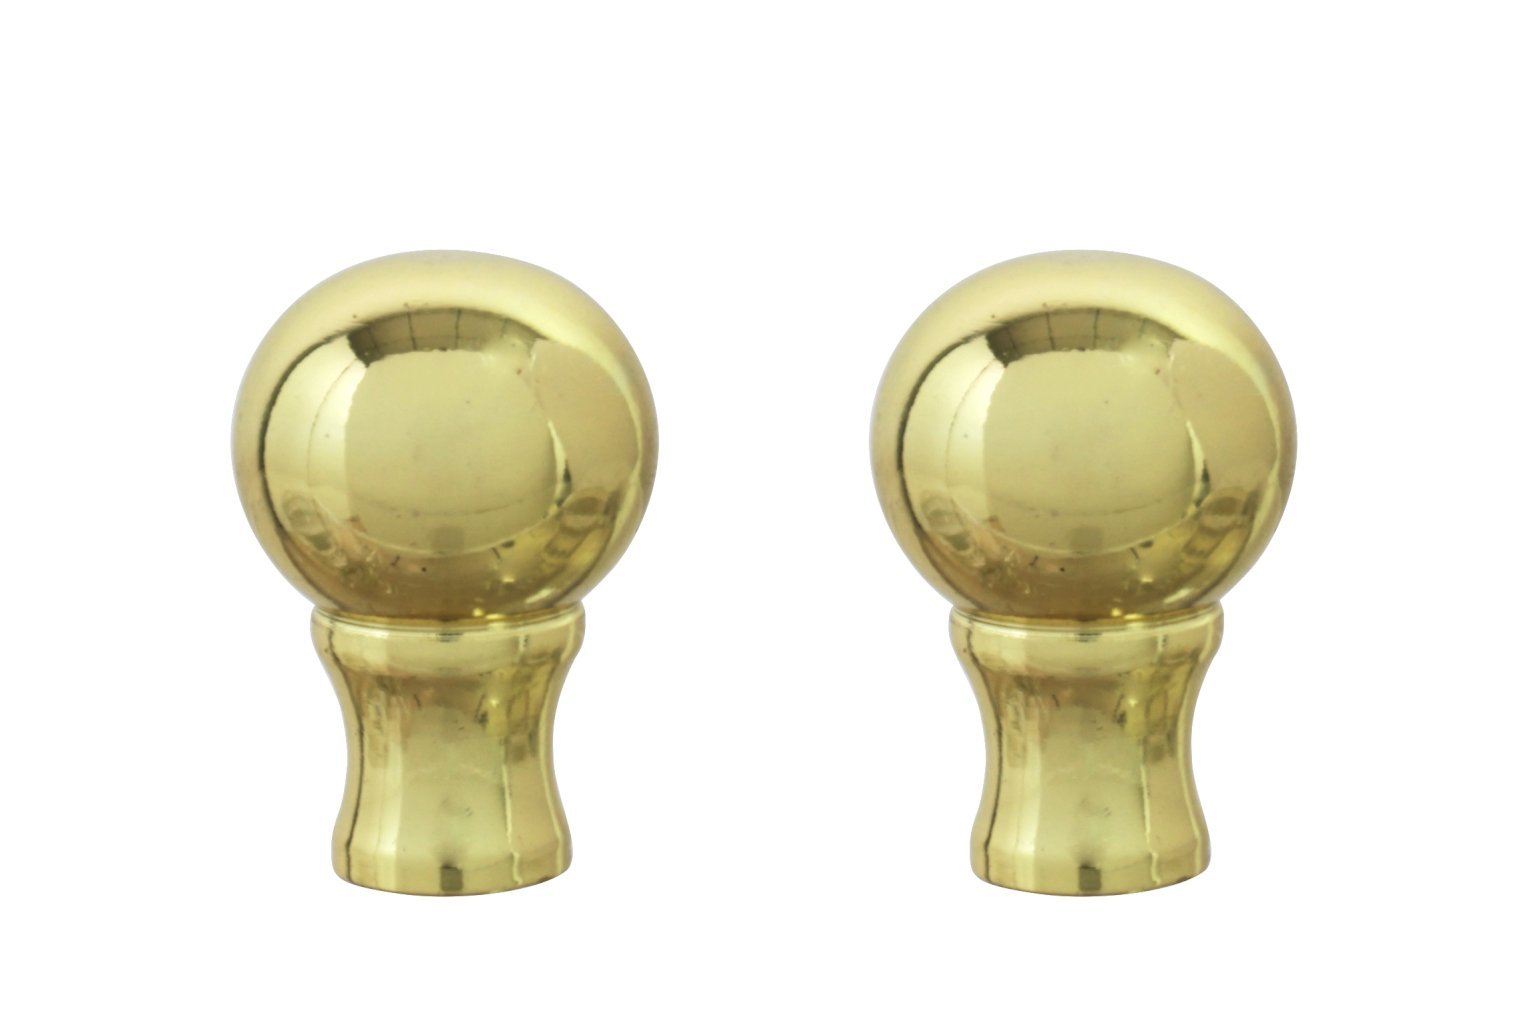 Aspen Creative 24018-12 Steel Lamp Finial Finish, 1 1/2'' Tall (2), 2 PACK, Brass Plated by Aspen Creative